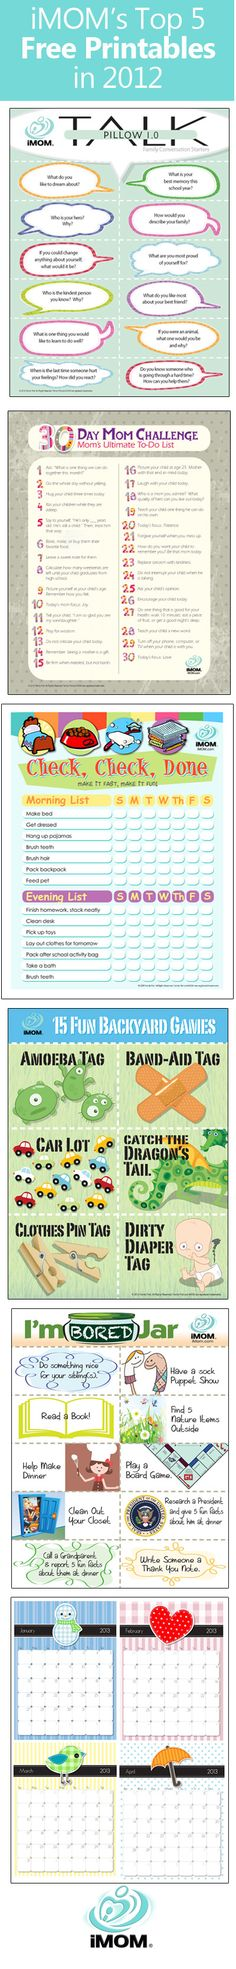 THIS IS AWESOME!!! Must check these out in greater detail when I have time! iMOM's Top 5 Free Printables in 2012 iMOM has over 200 printables to help moms! http://imom.com/tools/